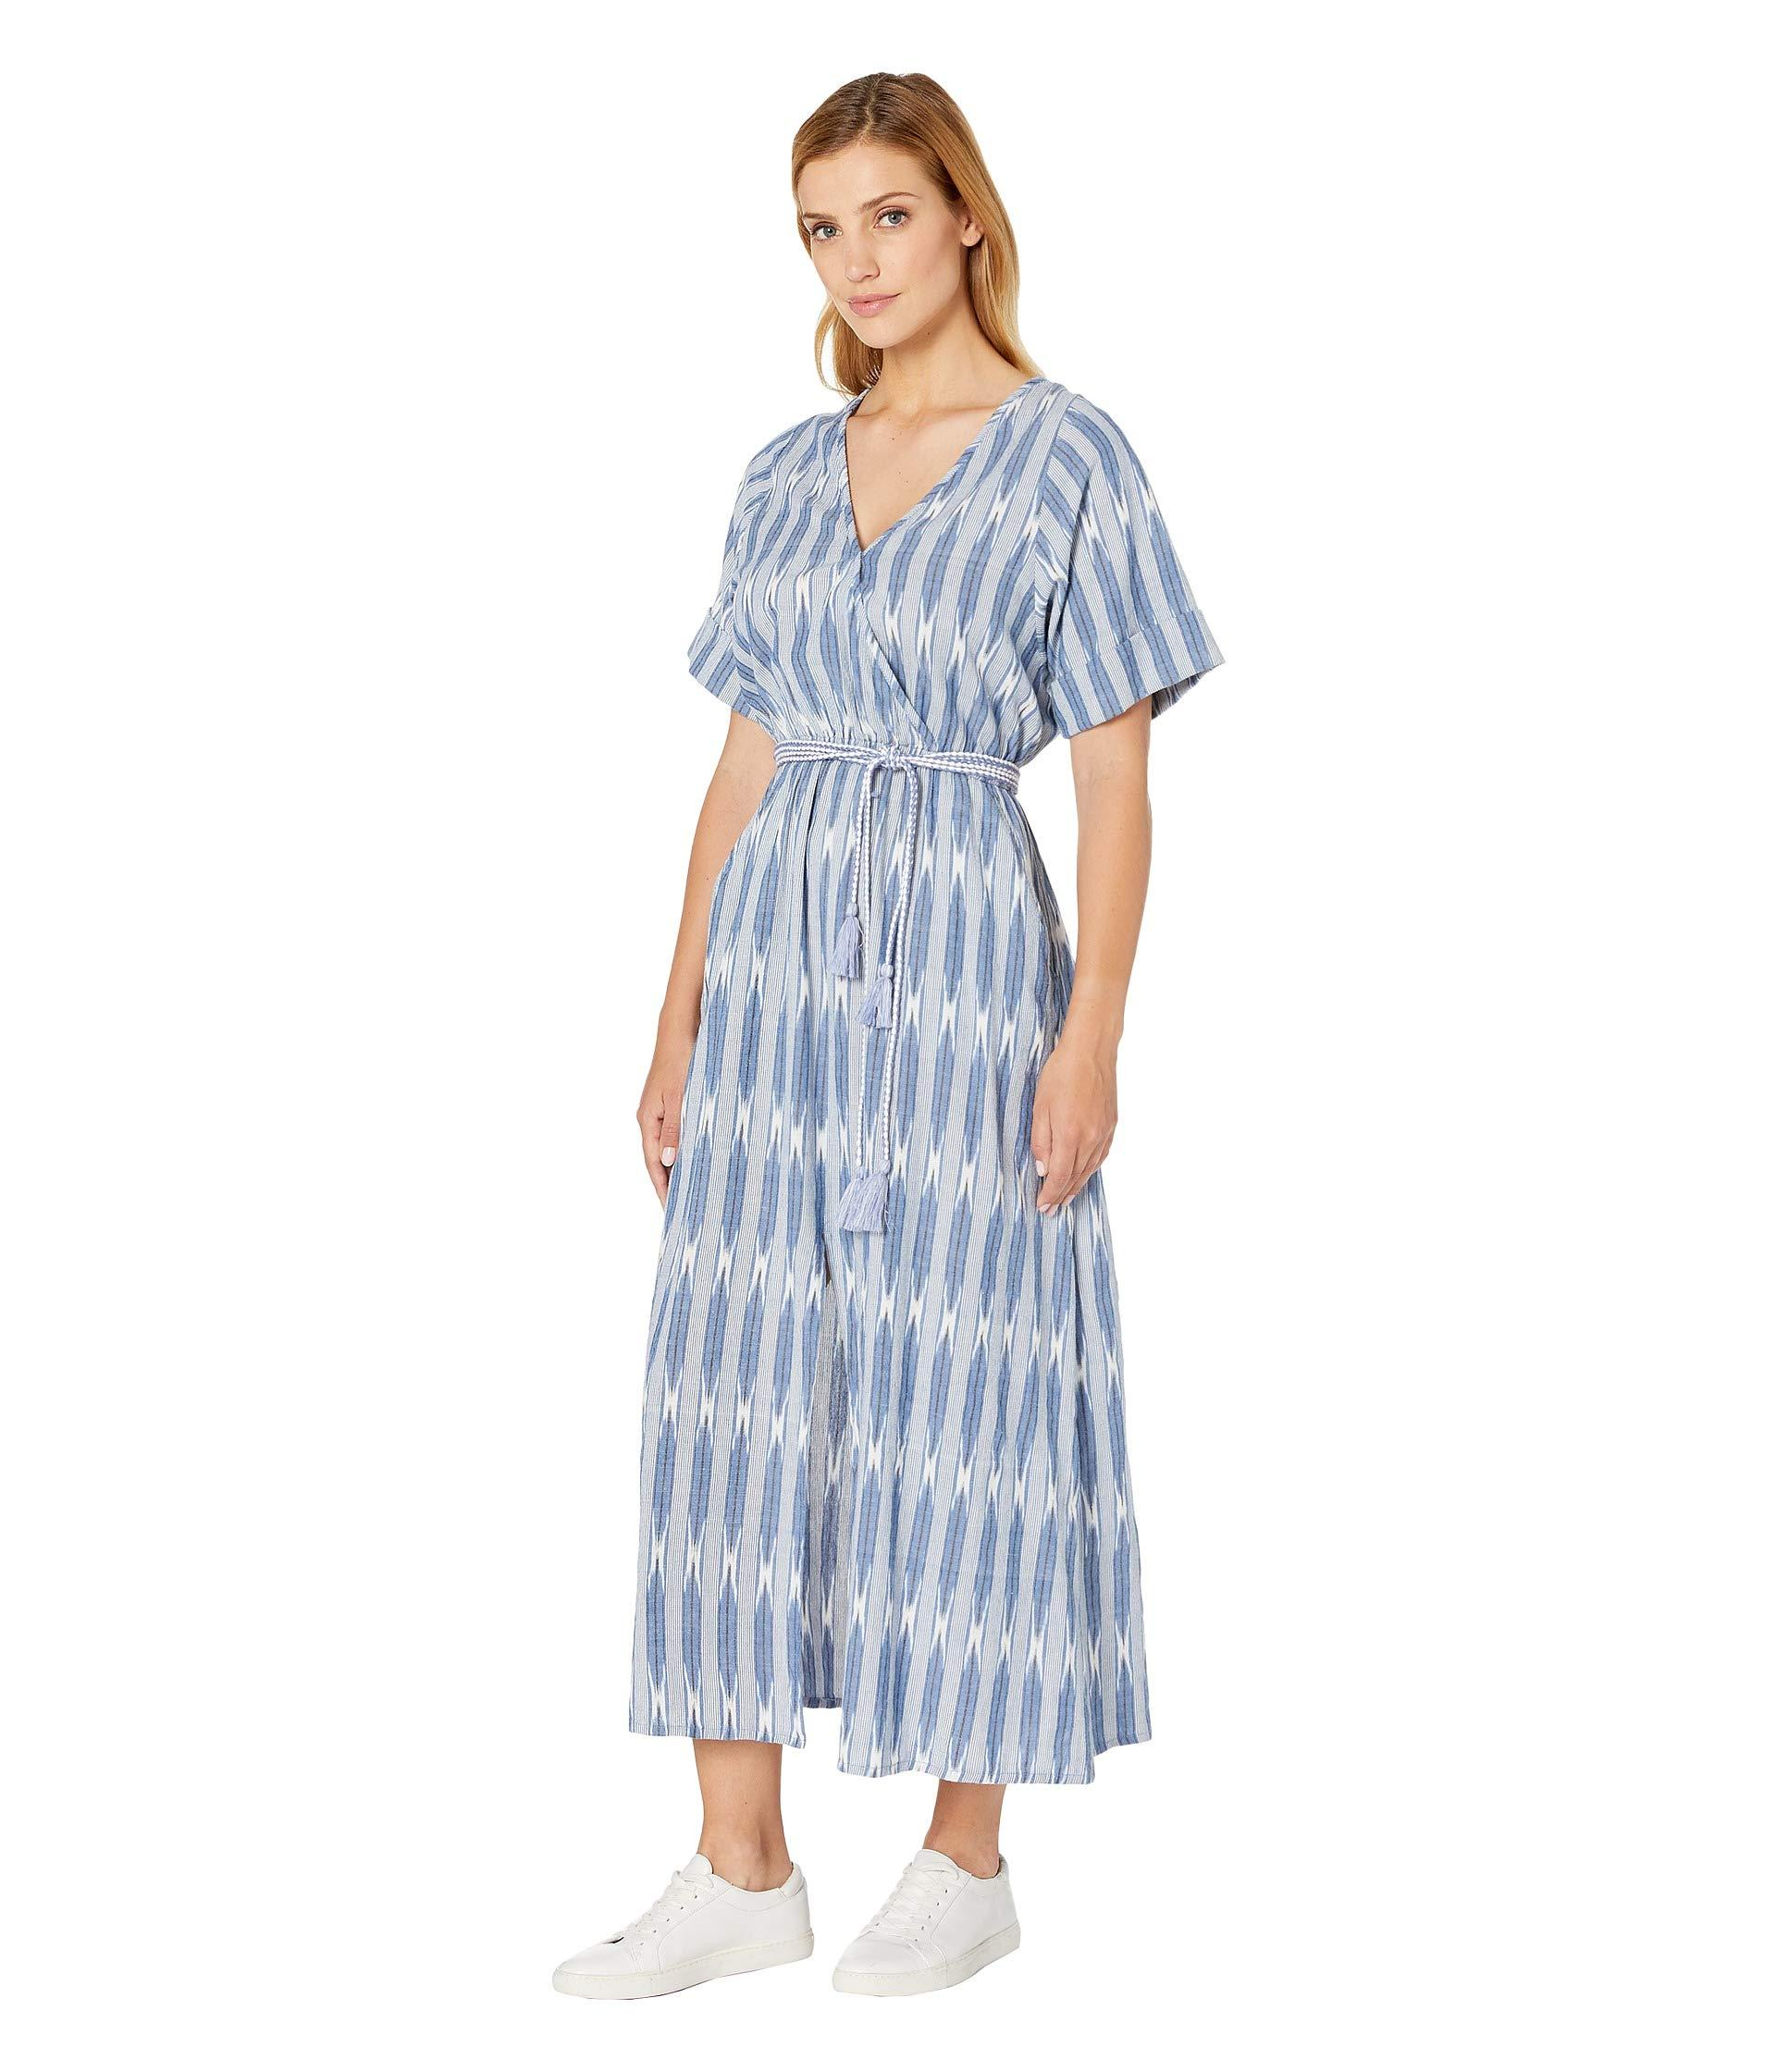 c609866bc828 Karen Kane Cuffed Sleeve Dress (off-white/blue) Women's Clothing in Blue -  Lyst